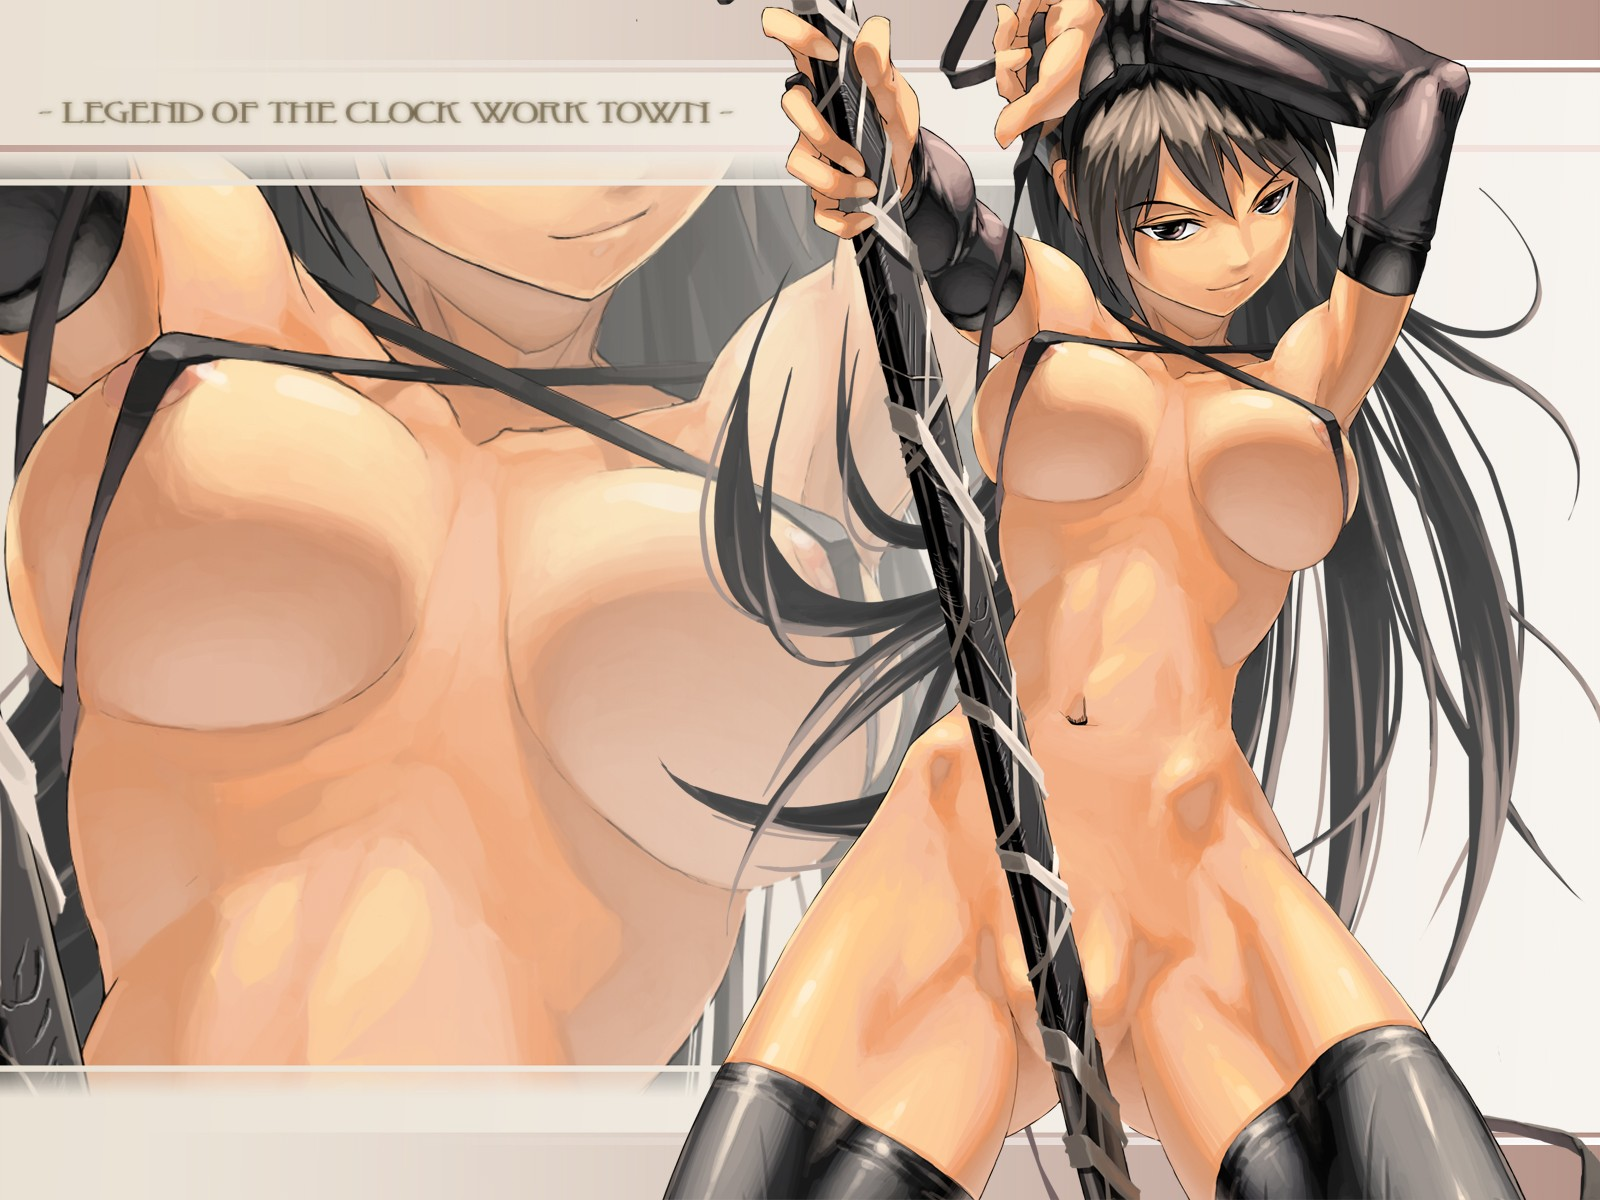 Hot warrior hentai girls hentai pictures